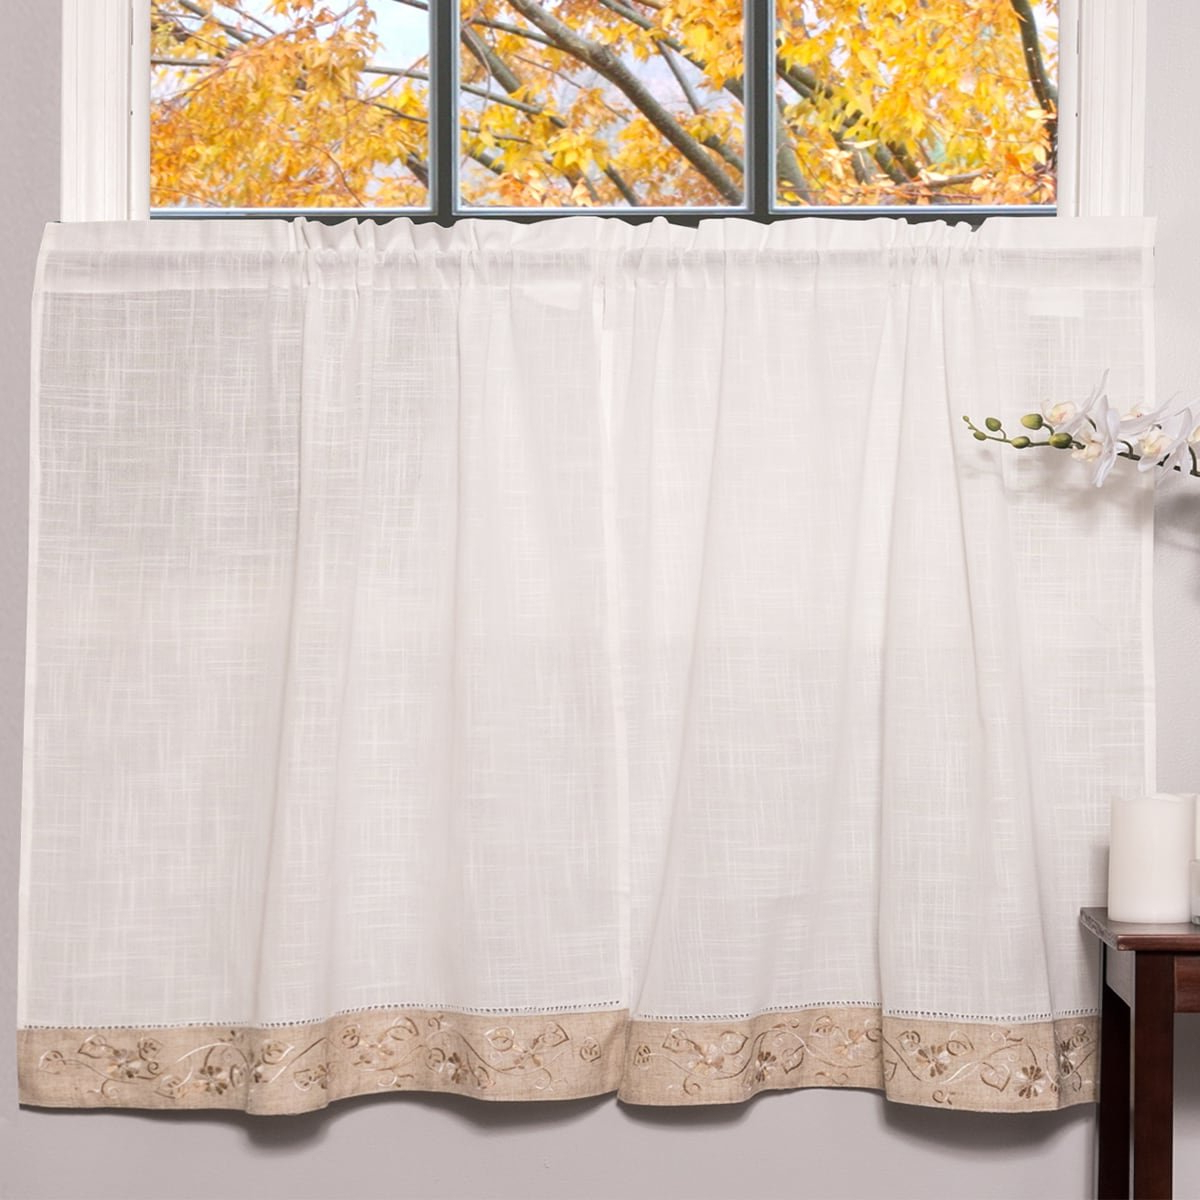 Famous Amazon: Bed Bath N More Oakwood Linen Style Decorative Inside Oakwood Linen Style Decorative Window Curtain Tier Sets (Gallery 2 of 20)